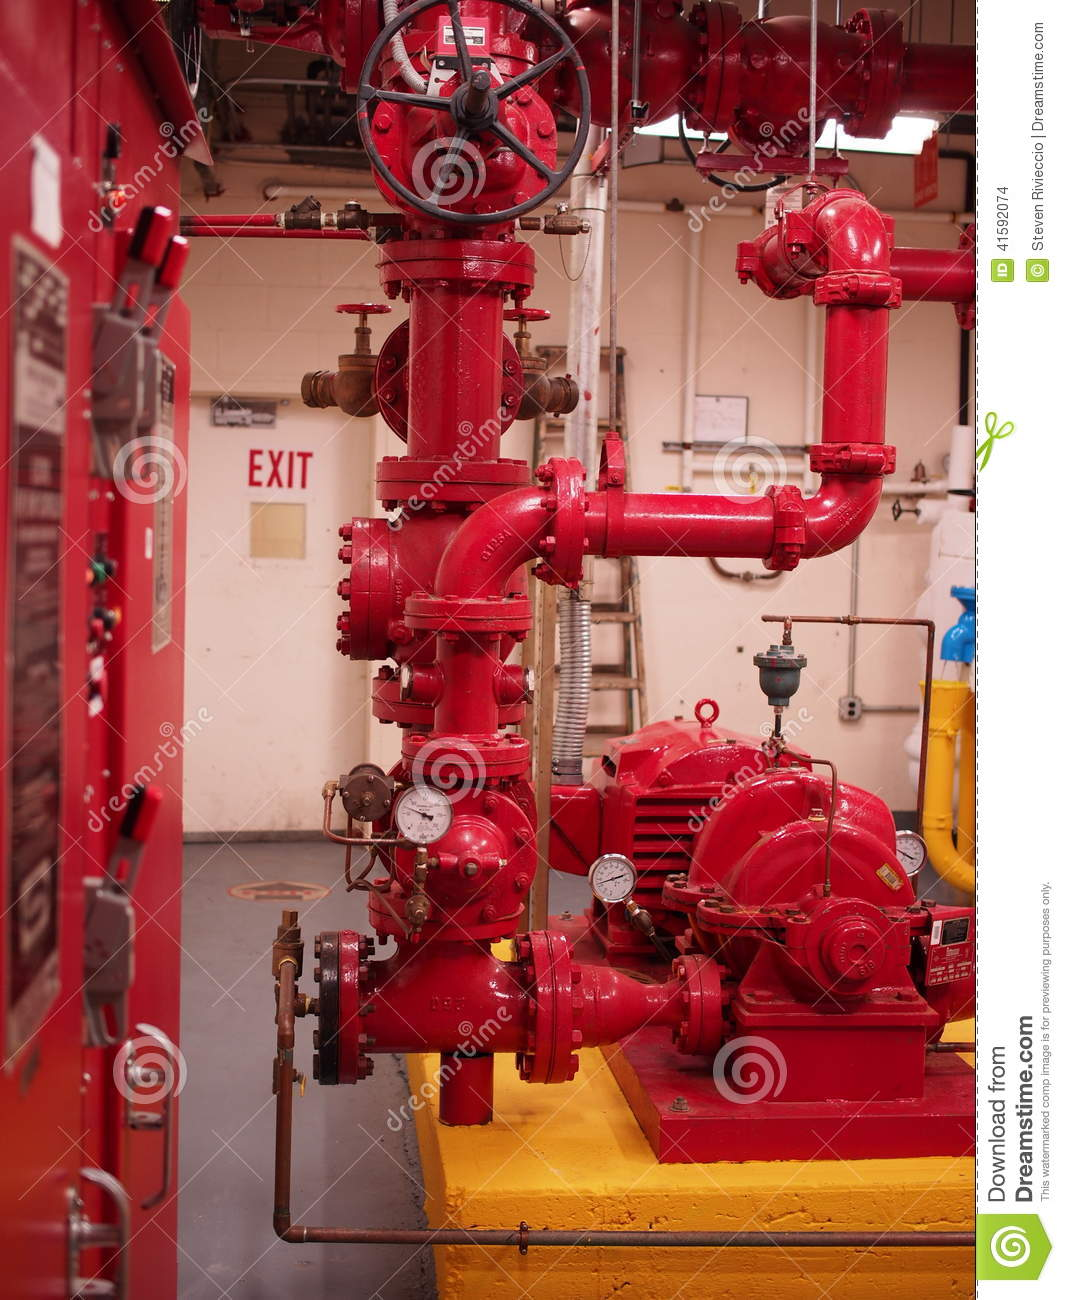 Home Fire Sprinkler System Design: Fire Pump Sprinkler And Standpipe Systems Stock Photo